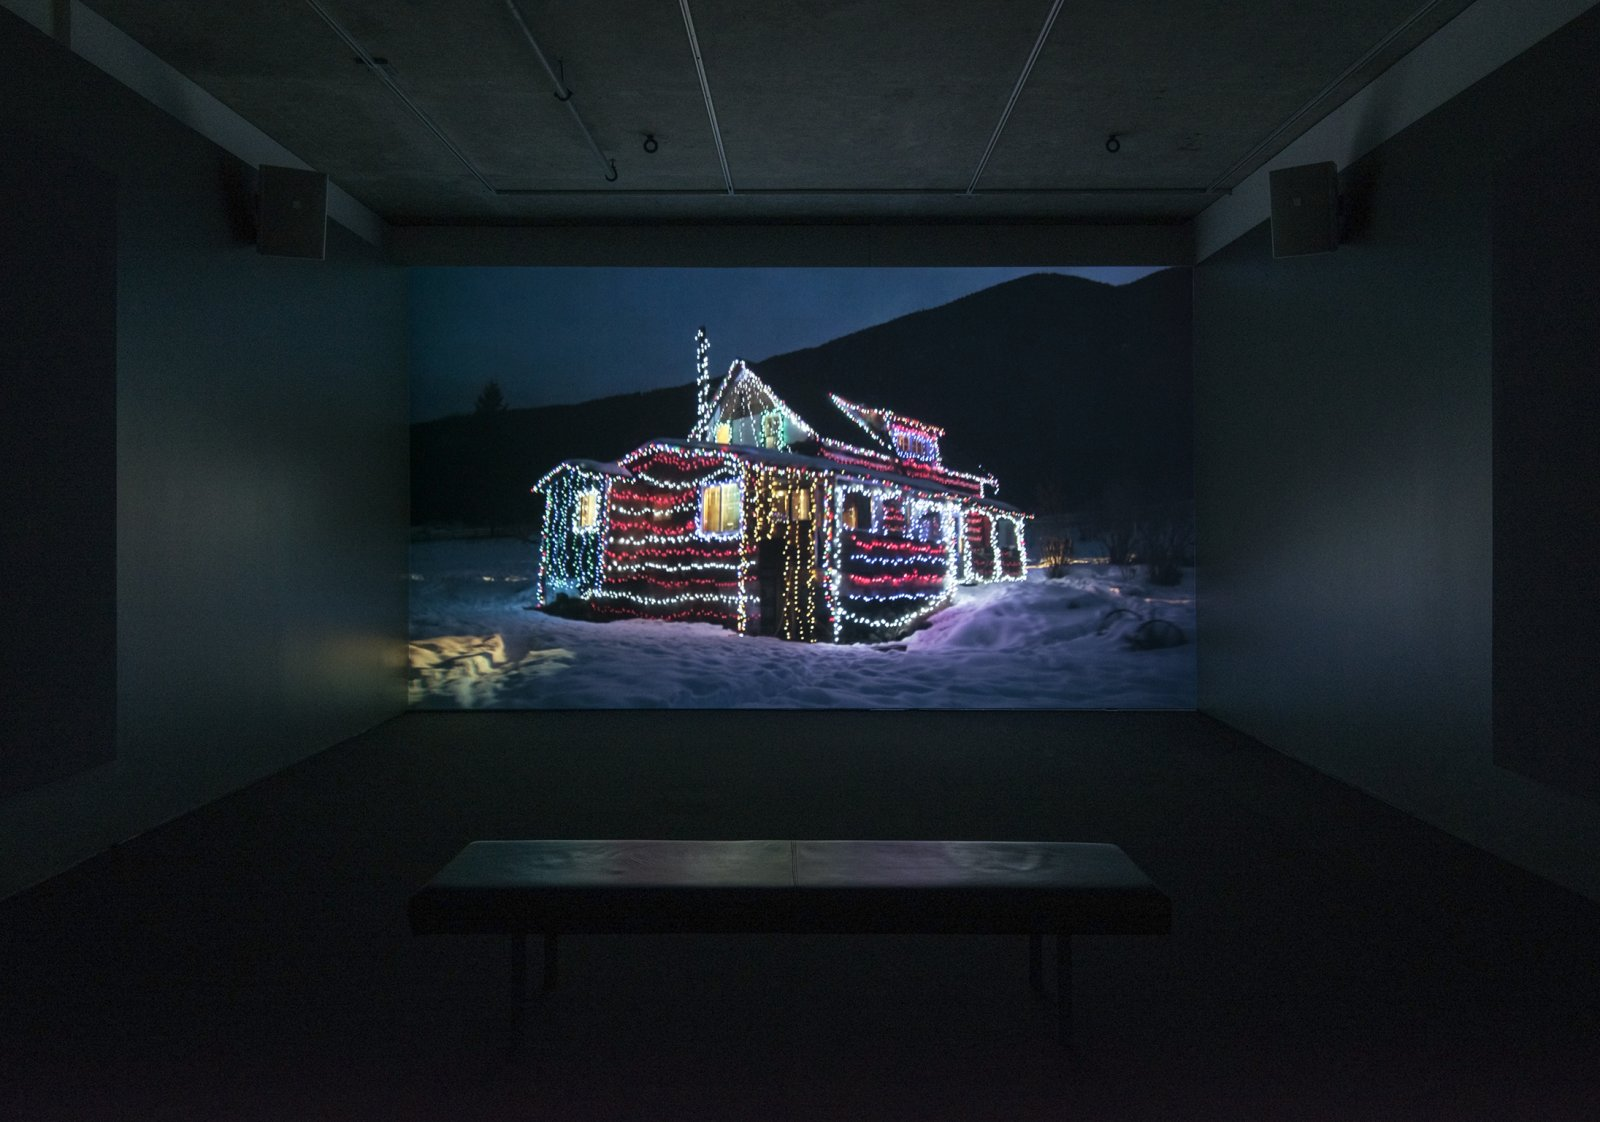 Kevin Schmidt, EDM House, 2014, HD video, 16 minutes, 54 seconds. Installation view, Contemporary Art Gallery, Vancouver, 2014